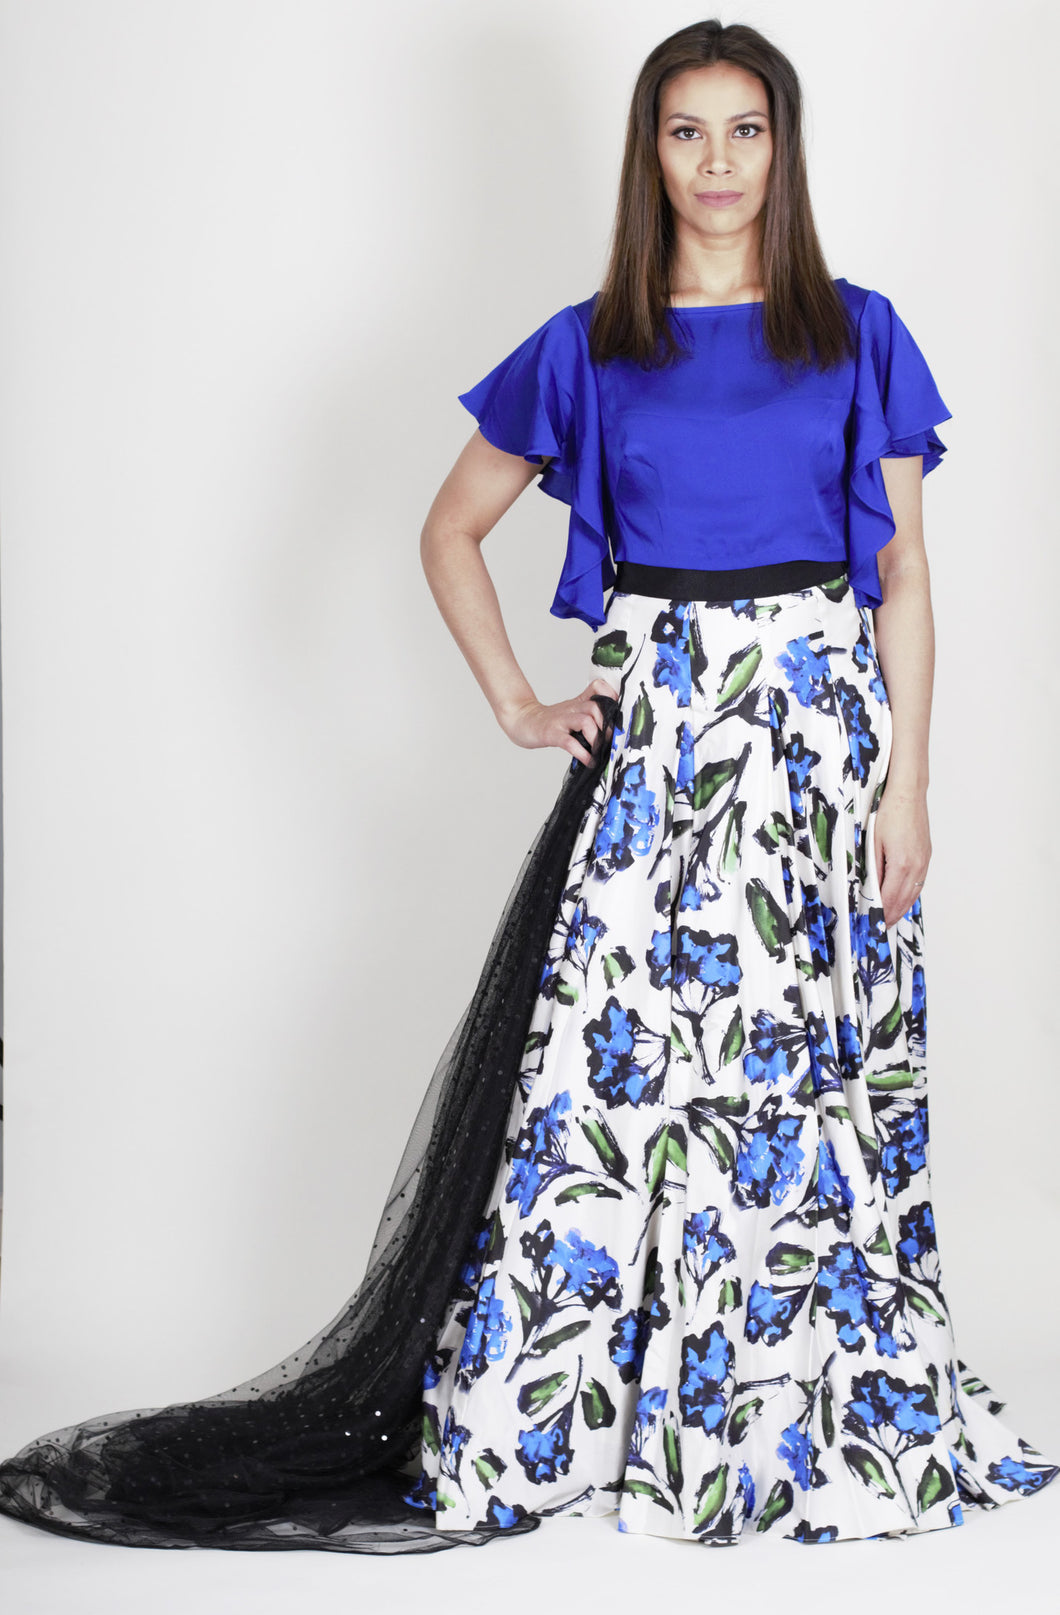 Milly Floral Skirt and Flutter Sleeve Blouse